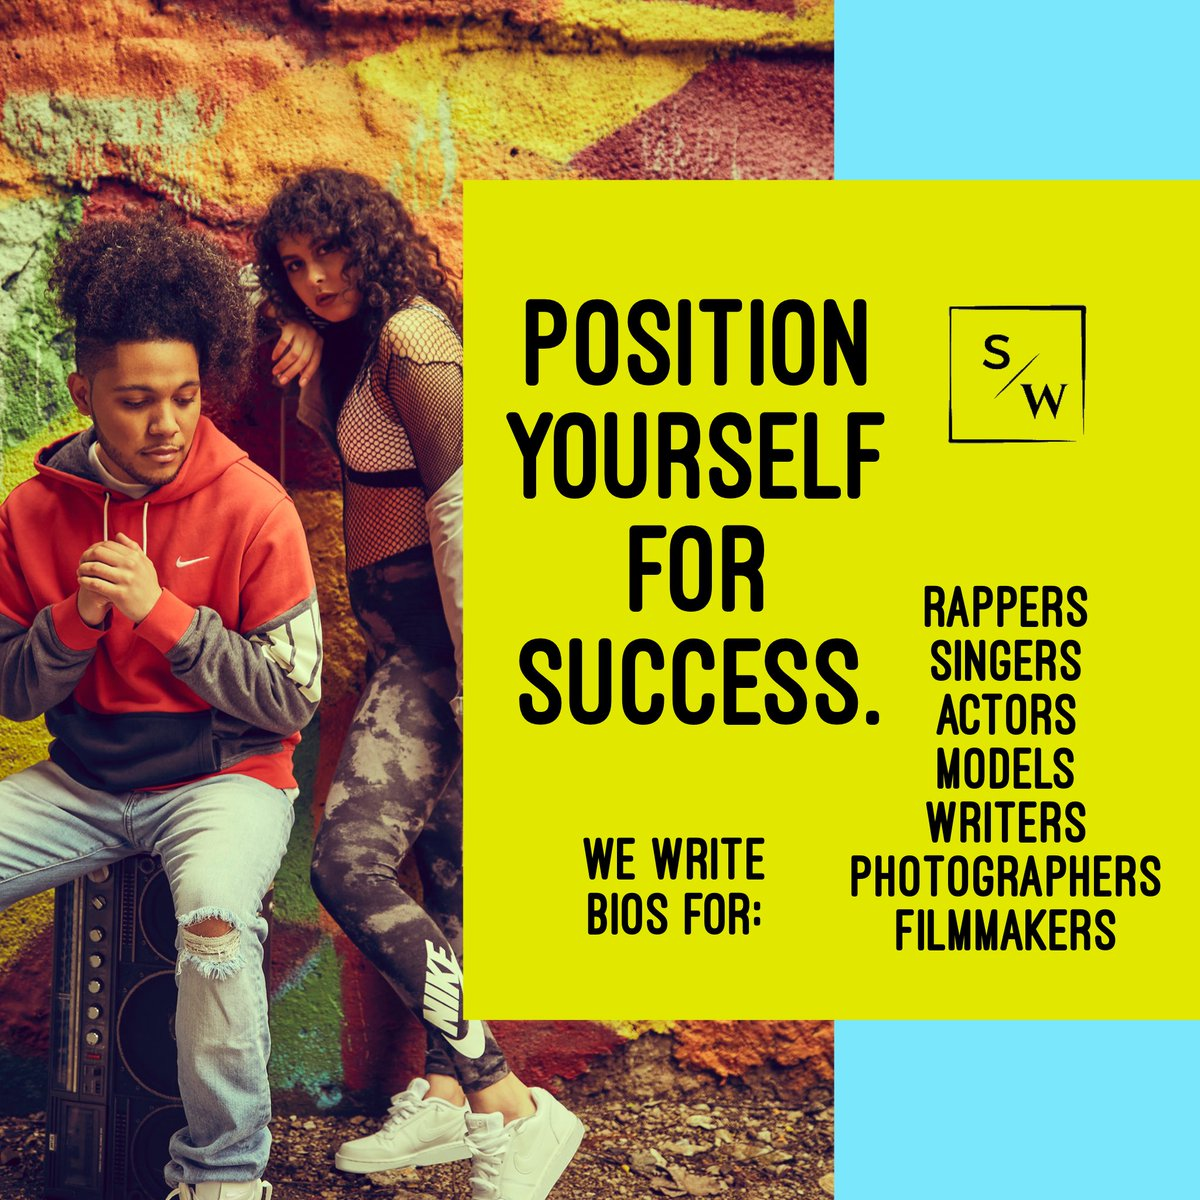 It's all about your POSITION!   Calling all #actors #musicians #entrepreneurs who need writing services!   DM us today!pic.twitter.com/r6U8vjOtrM